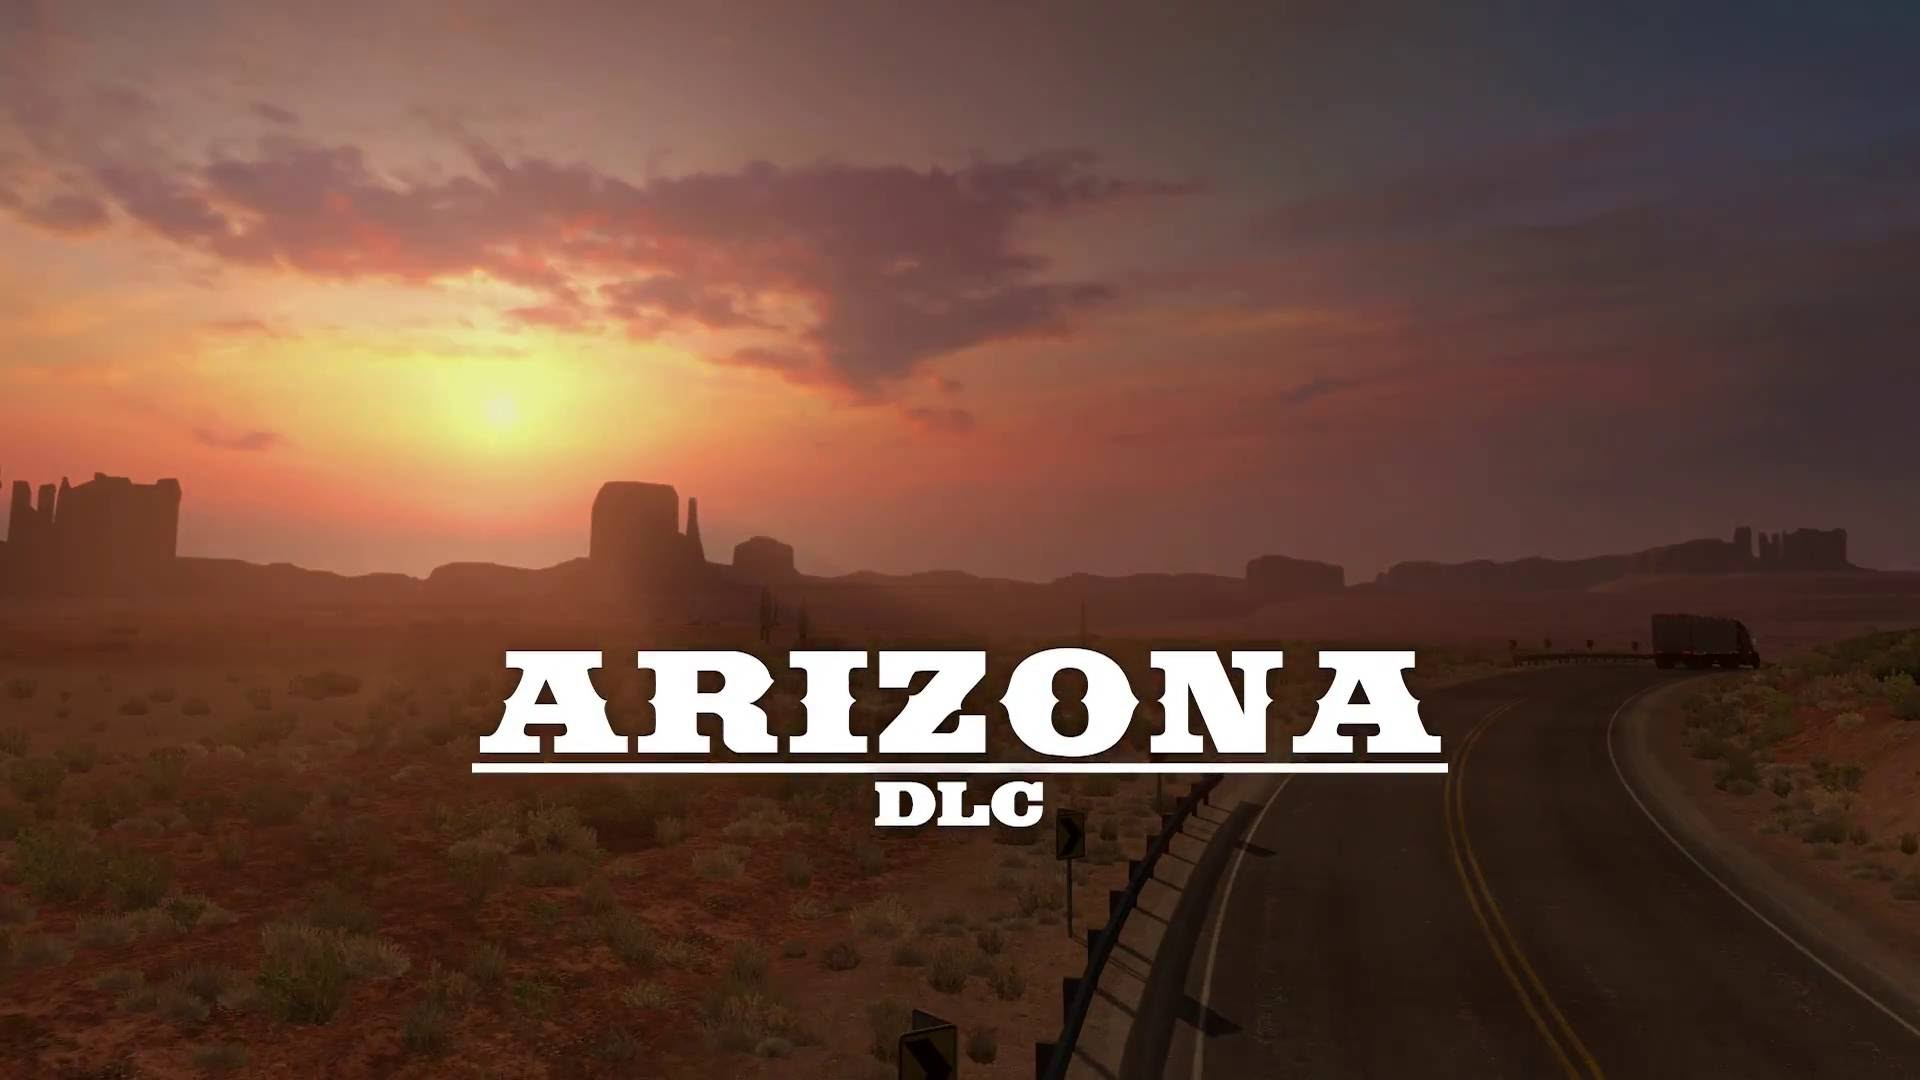 American Truck Simulator Update 1.3 + Arizona DLC